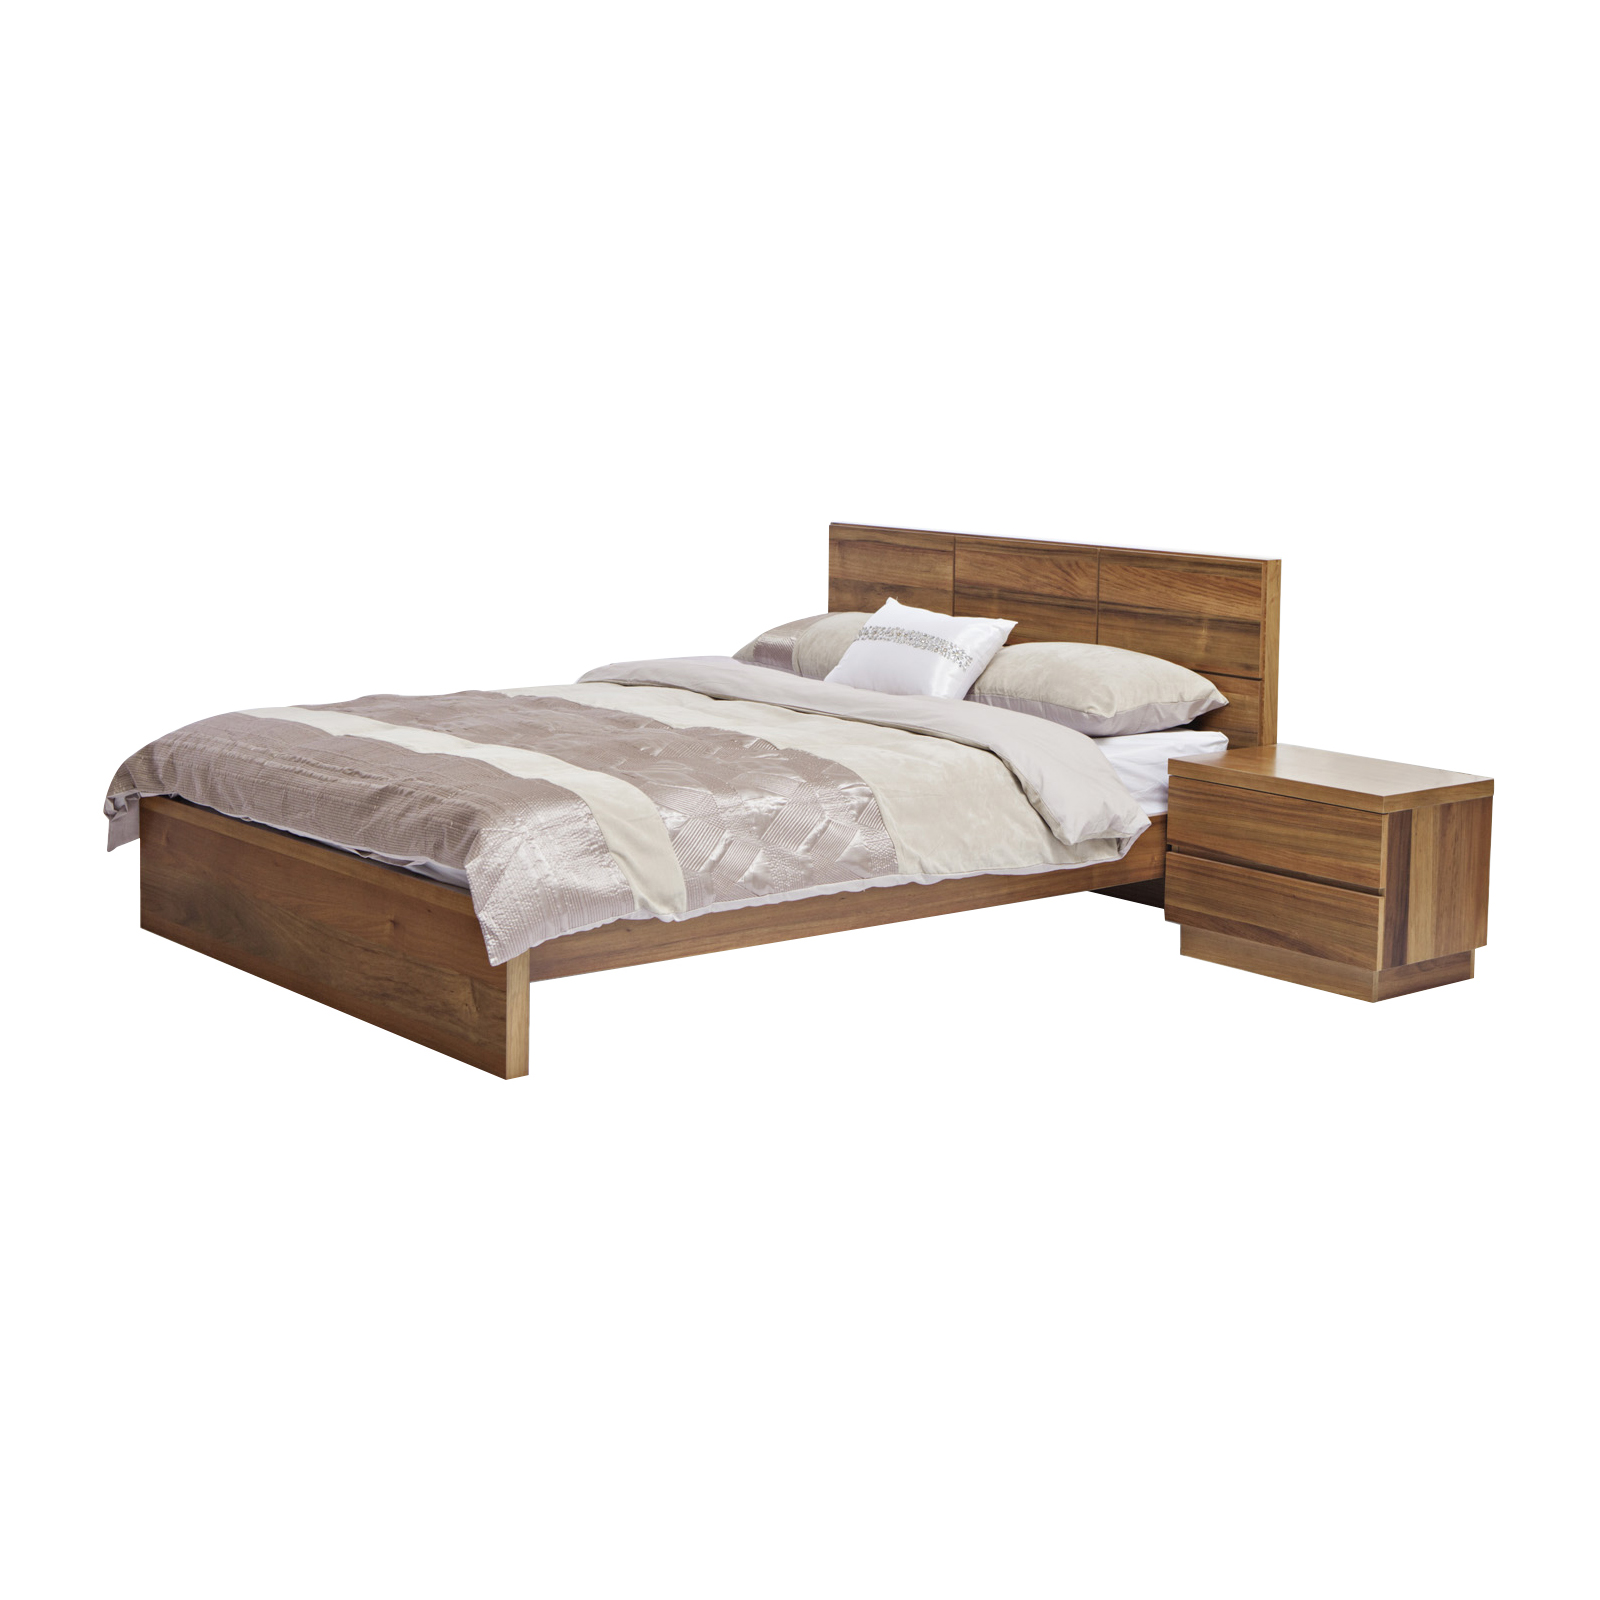 Florence Solid Timberblackwood Veneer Queenking Size Bed Frame